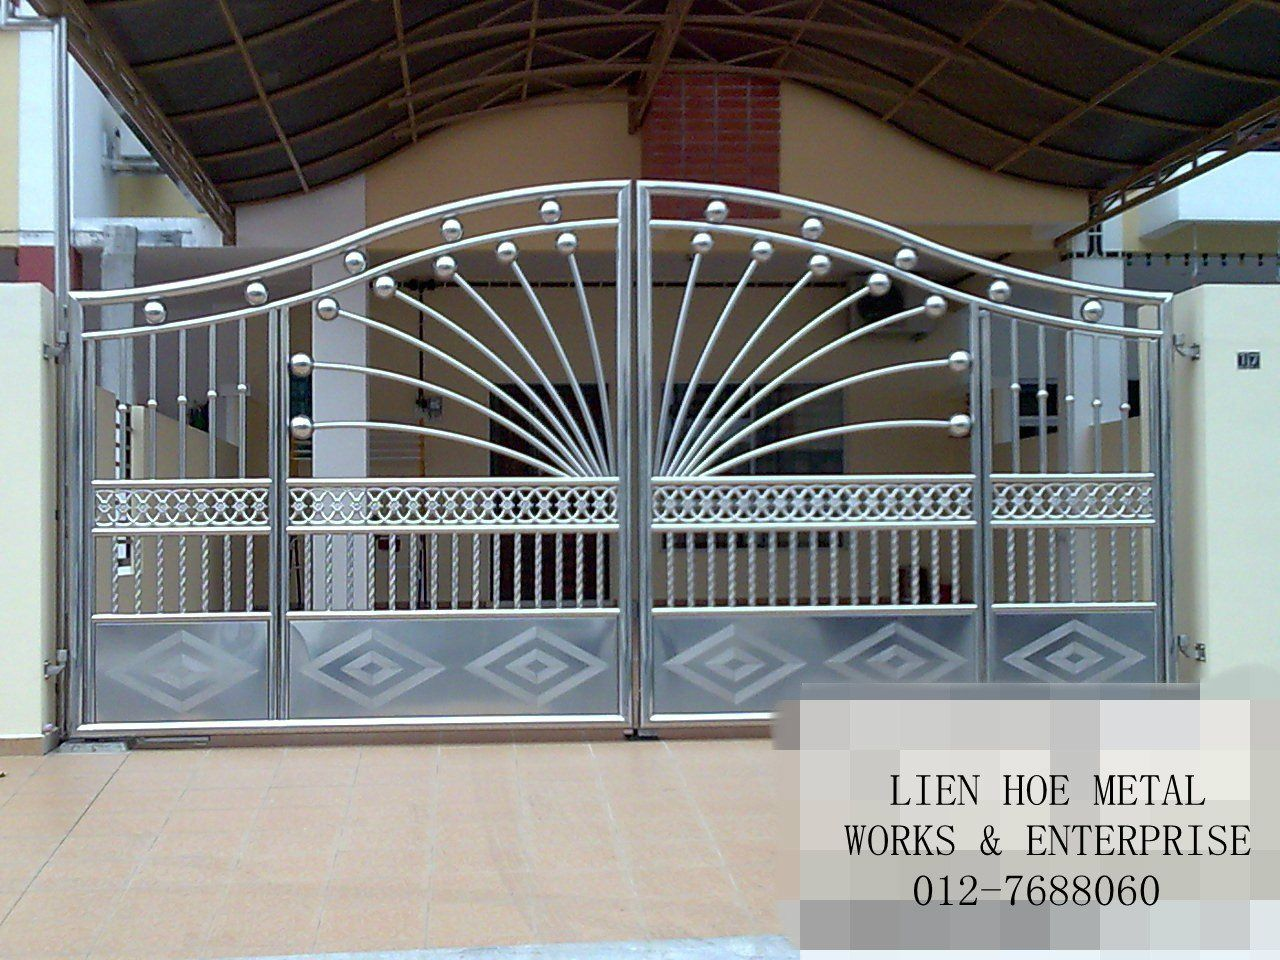 Metal Gate Designs Google Search Metal Gates Pinterest Metal Gate Designs Gate Design